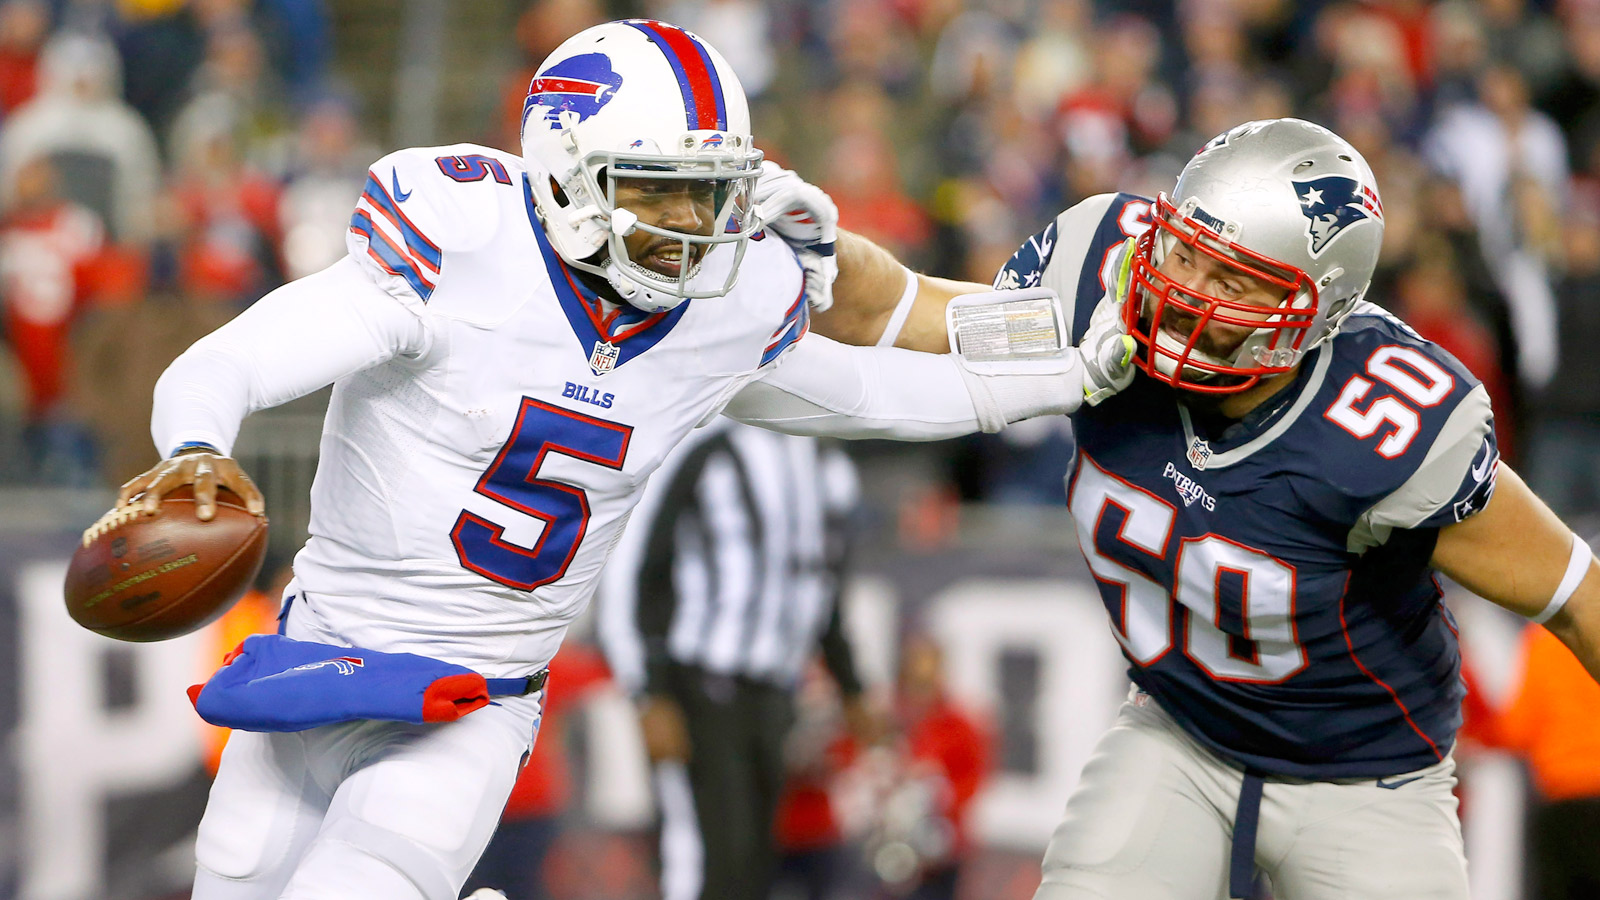 Bills QB Tyrod Taylor should be healthy enough to play against Chiefs